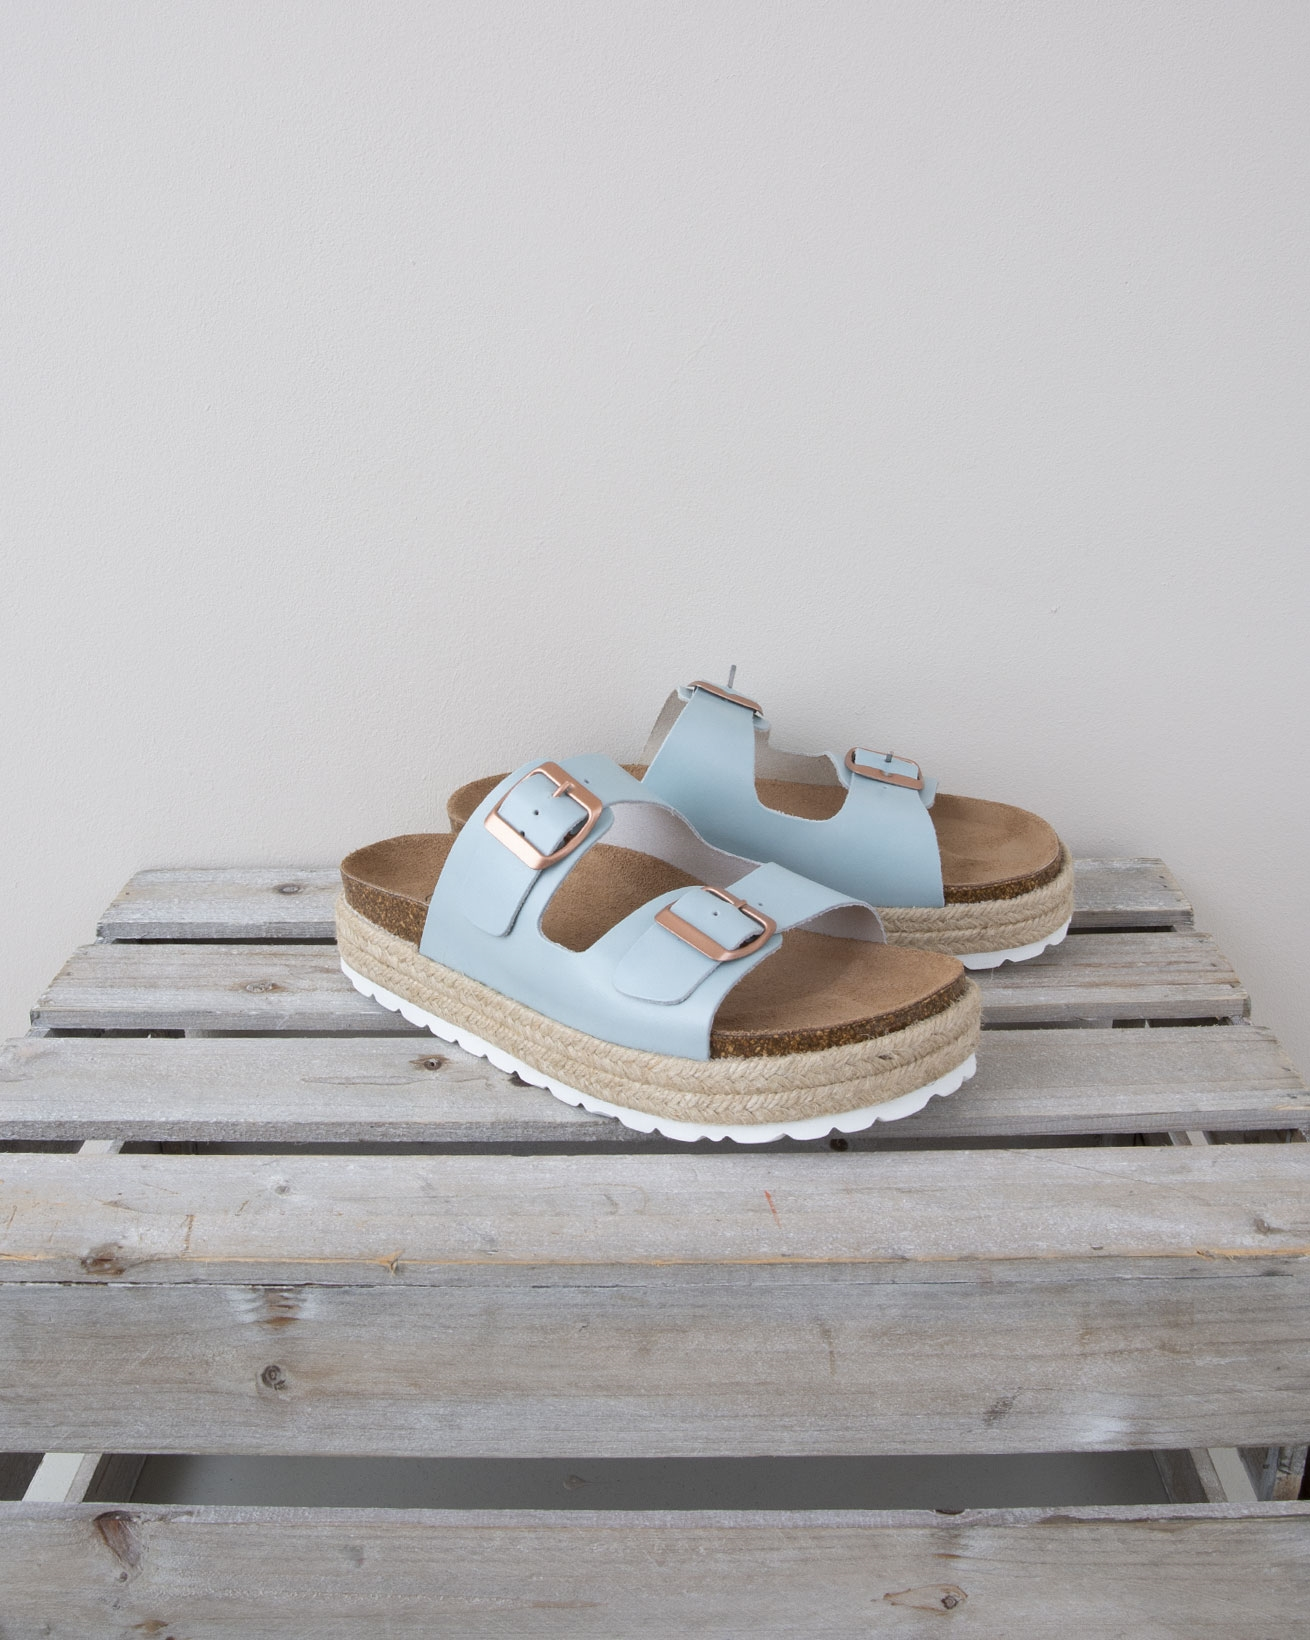 Double Buckle Sandal - Size 37 - baby Blue w/rose gold buckle - 1326